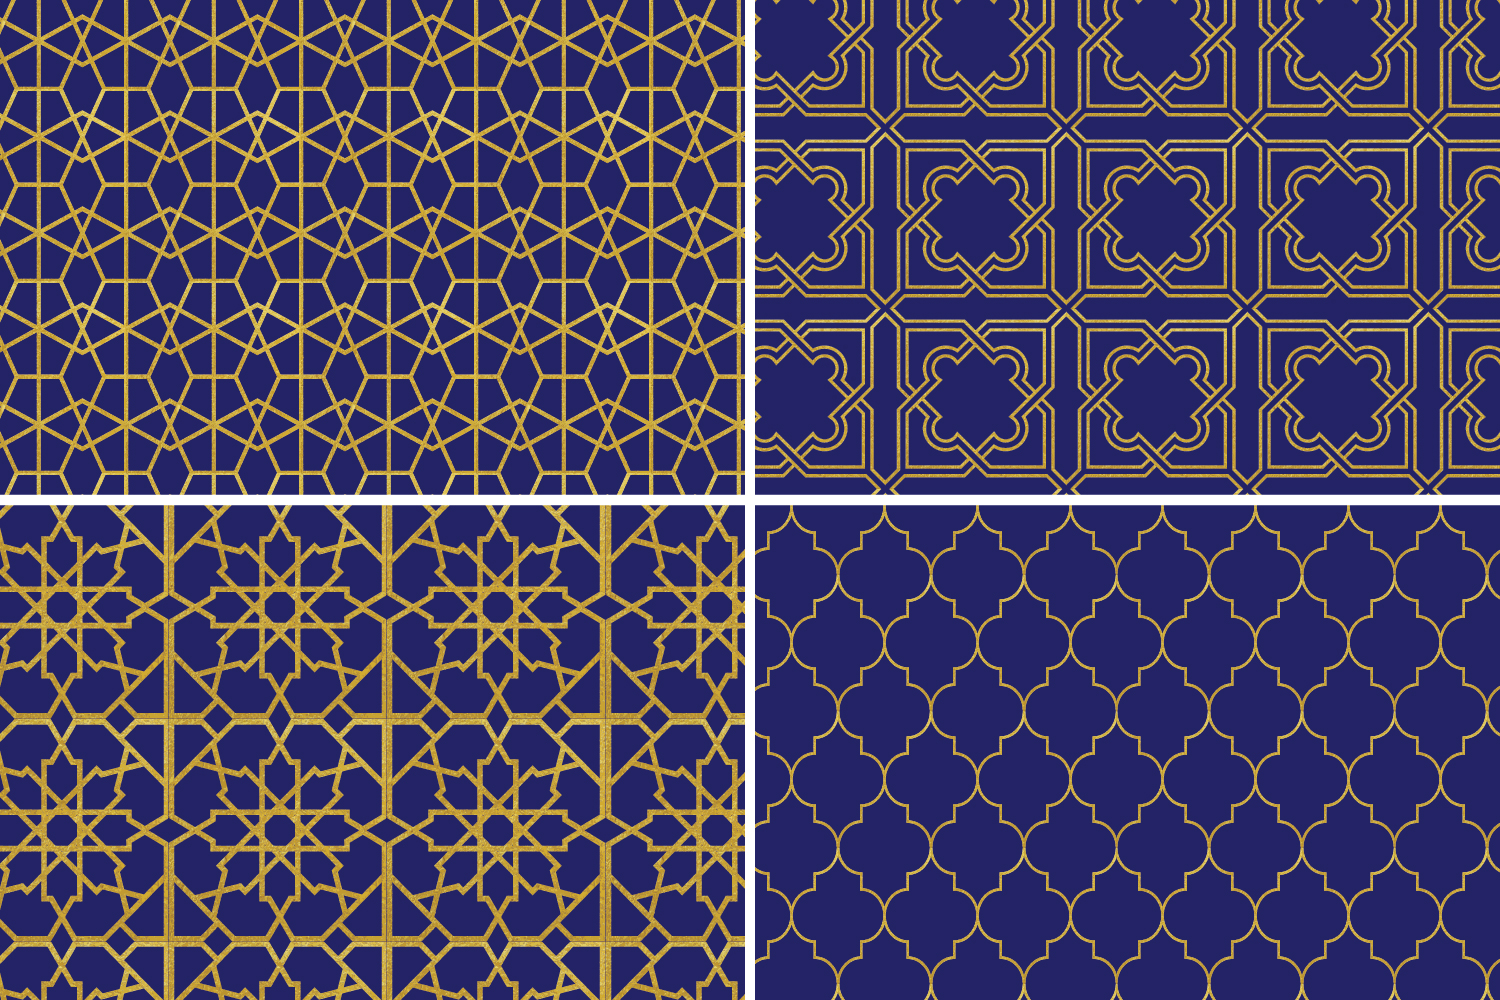 8 Seamless Moroccan Patterns - Gold & Cobalt Blue Set 2 example image 7